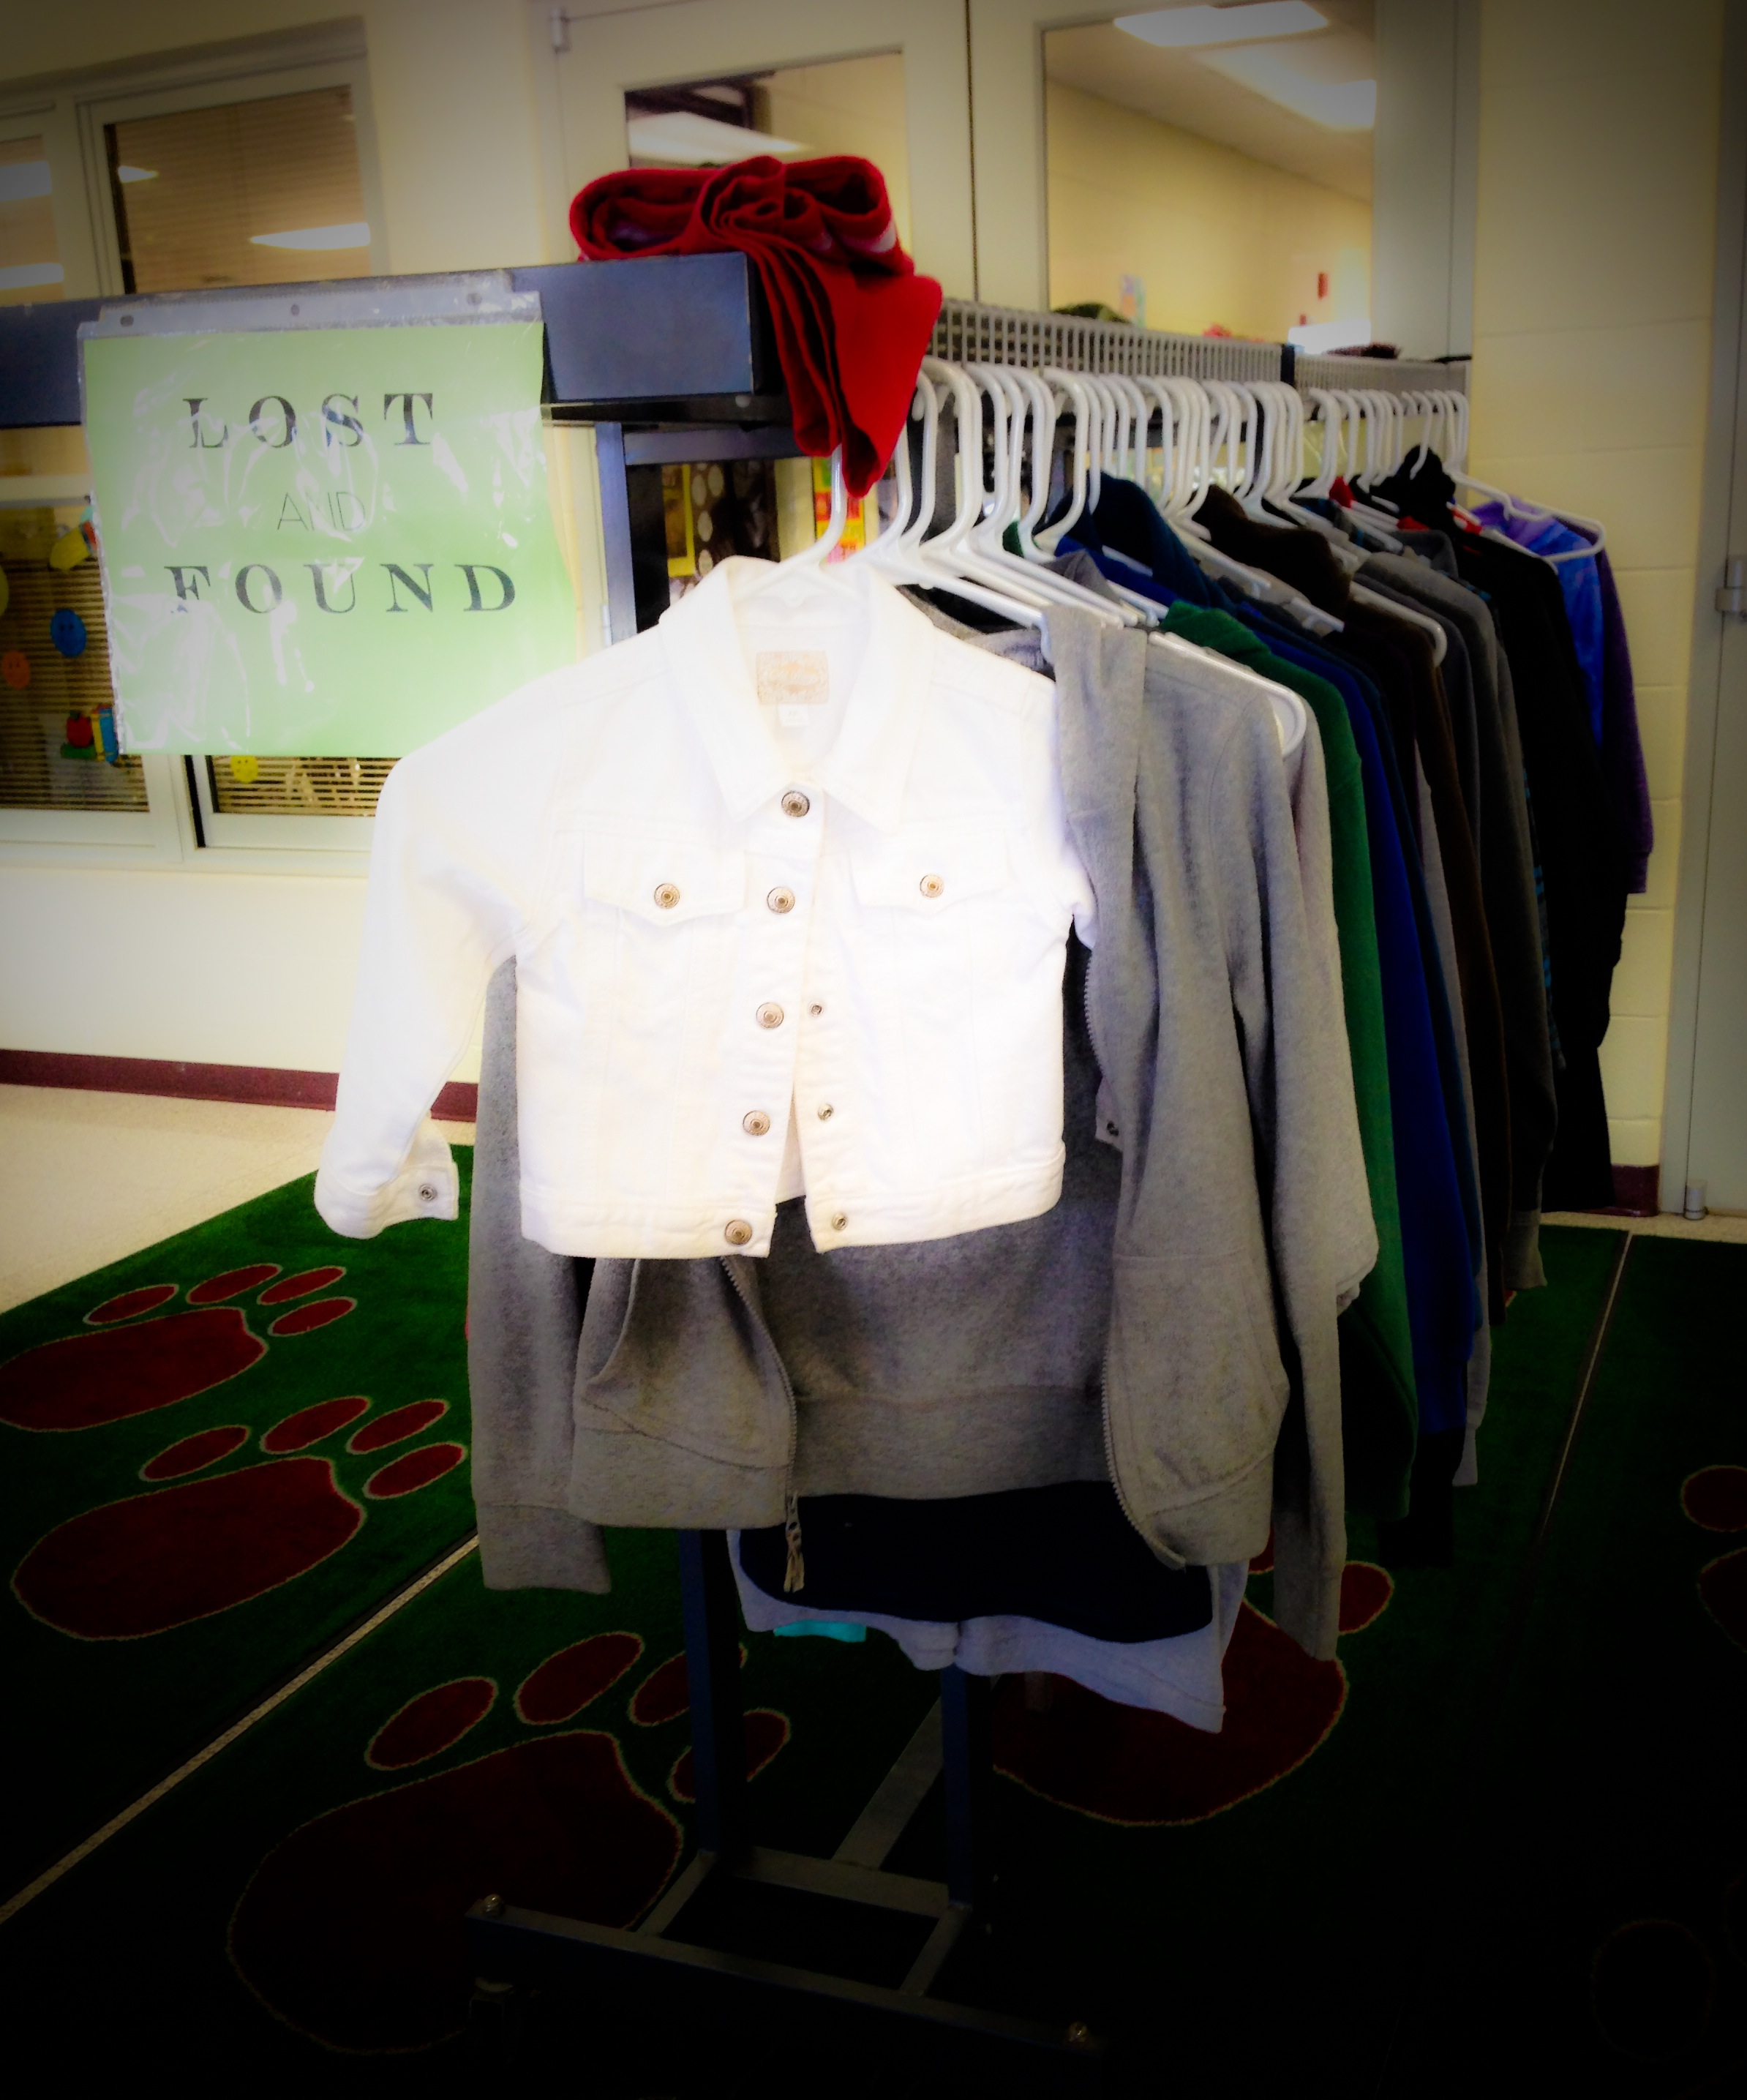 Small white child's jacket hung on a lost and found rack at school with other larger clothing items.